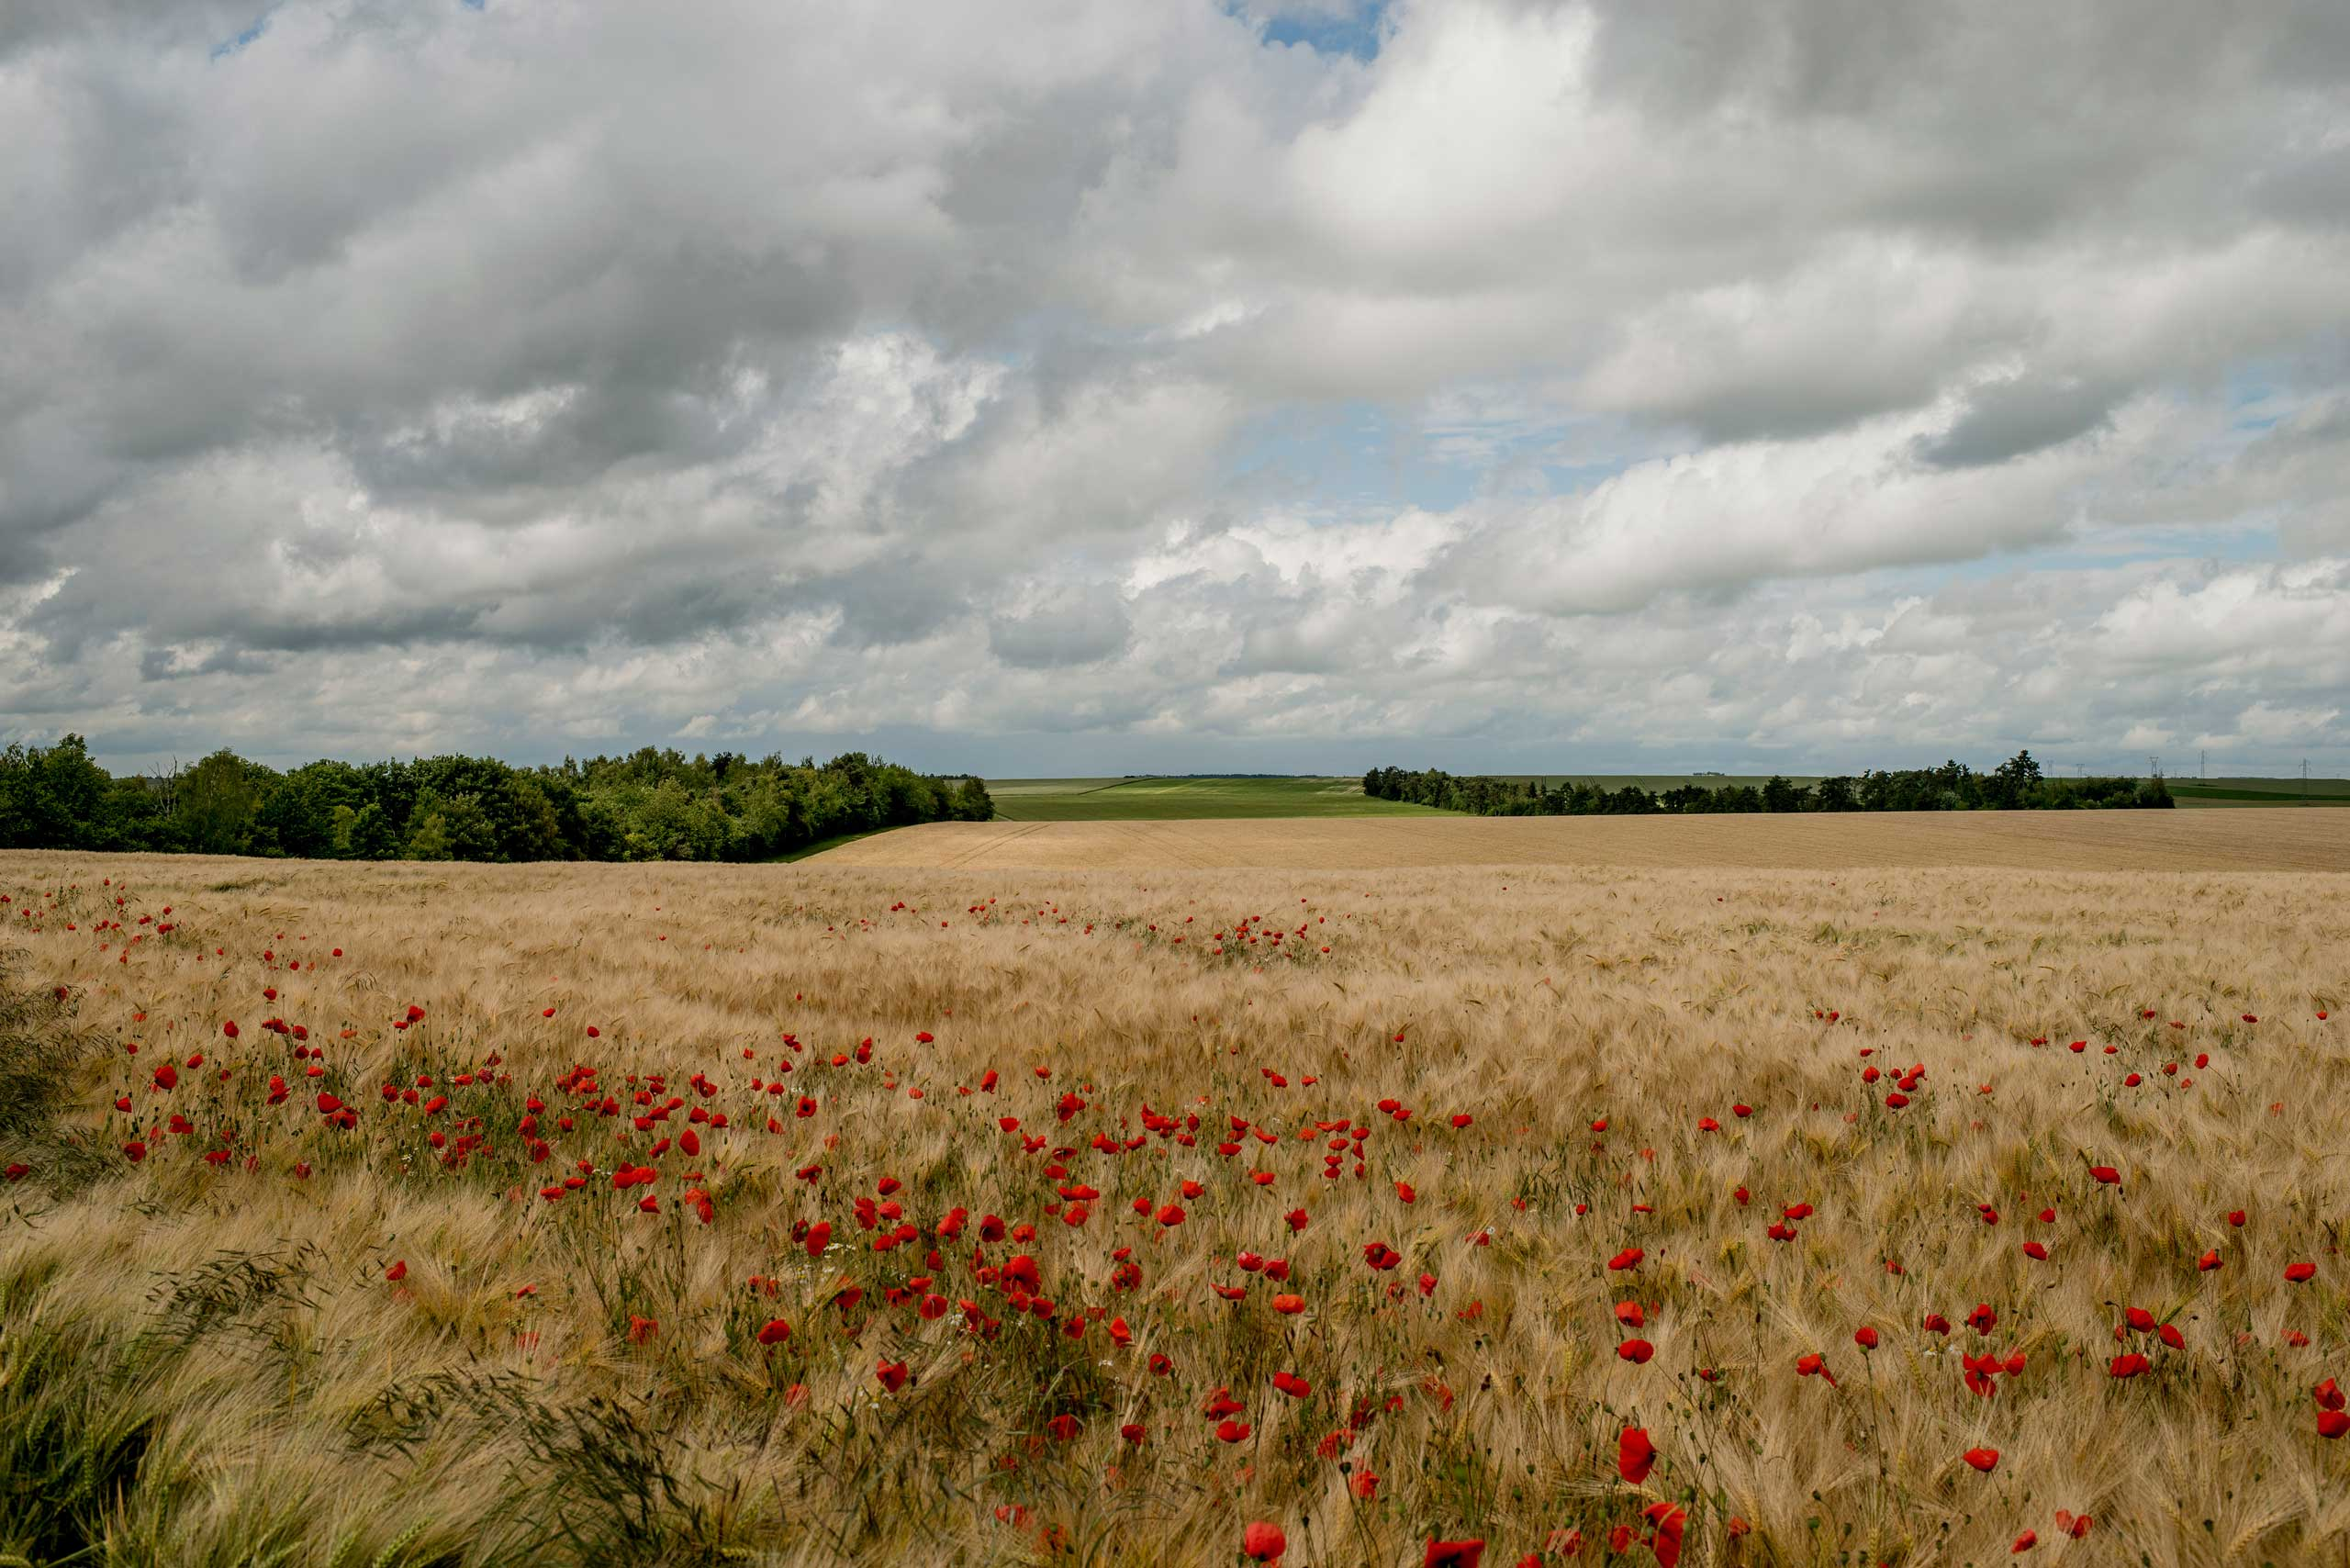 Poppies bloom amid wheat fields that were once the front line during World War I in Marne, France, June 4, 2014.